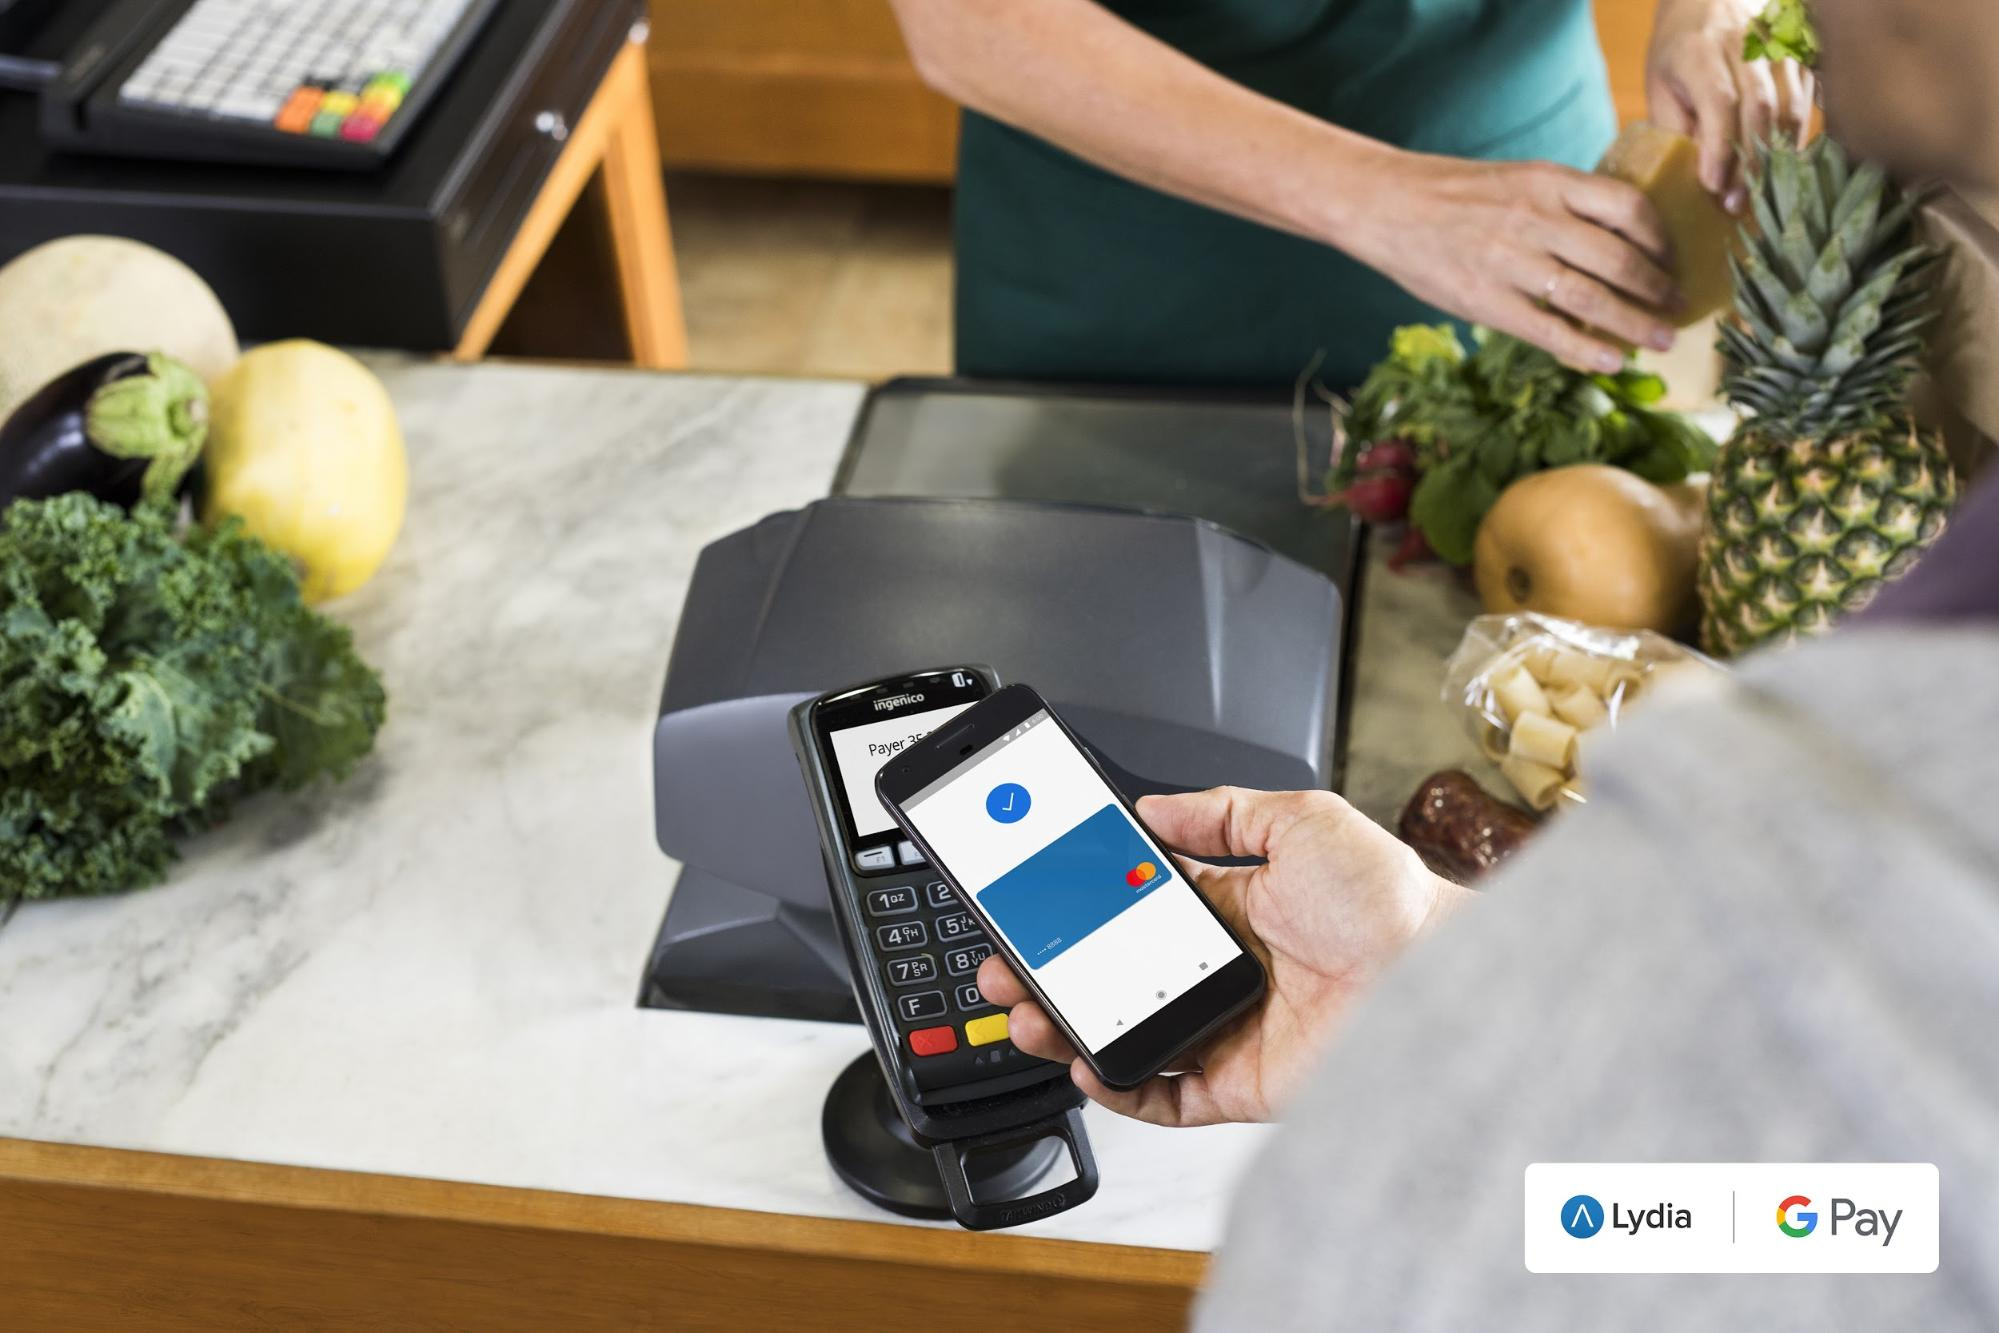 Google Pay mobile payment